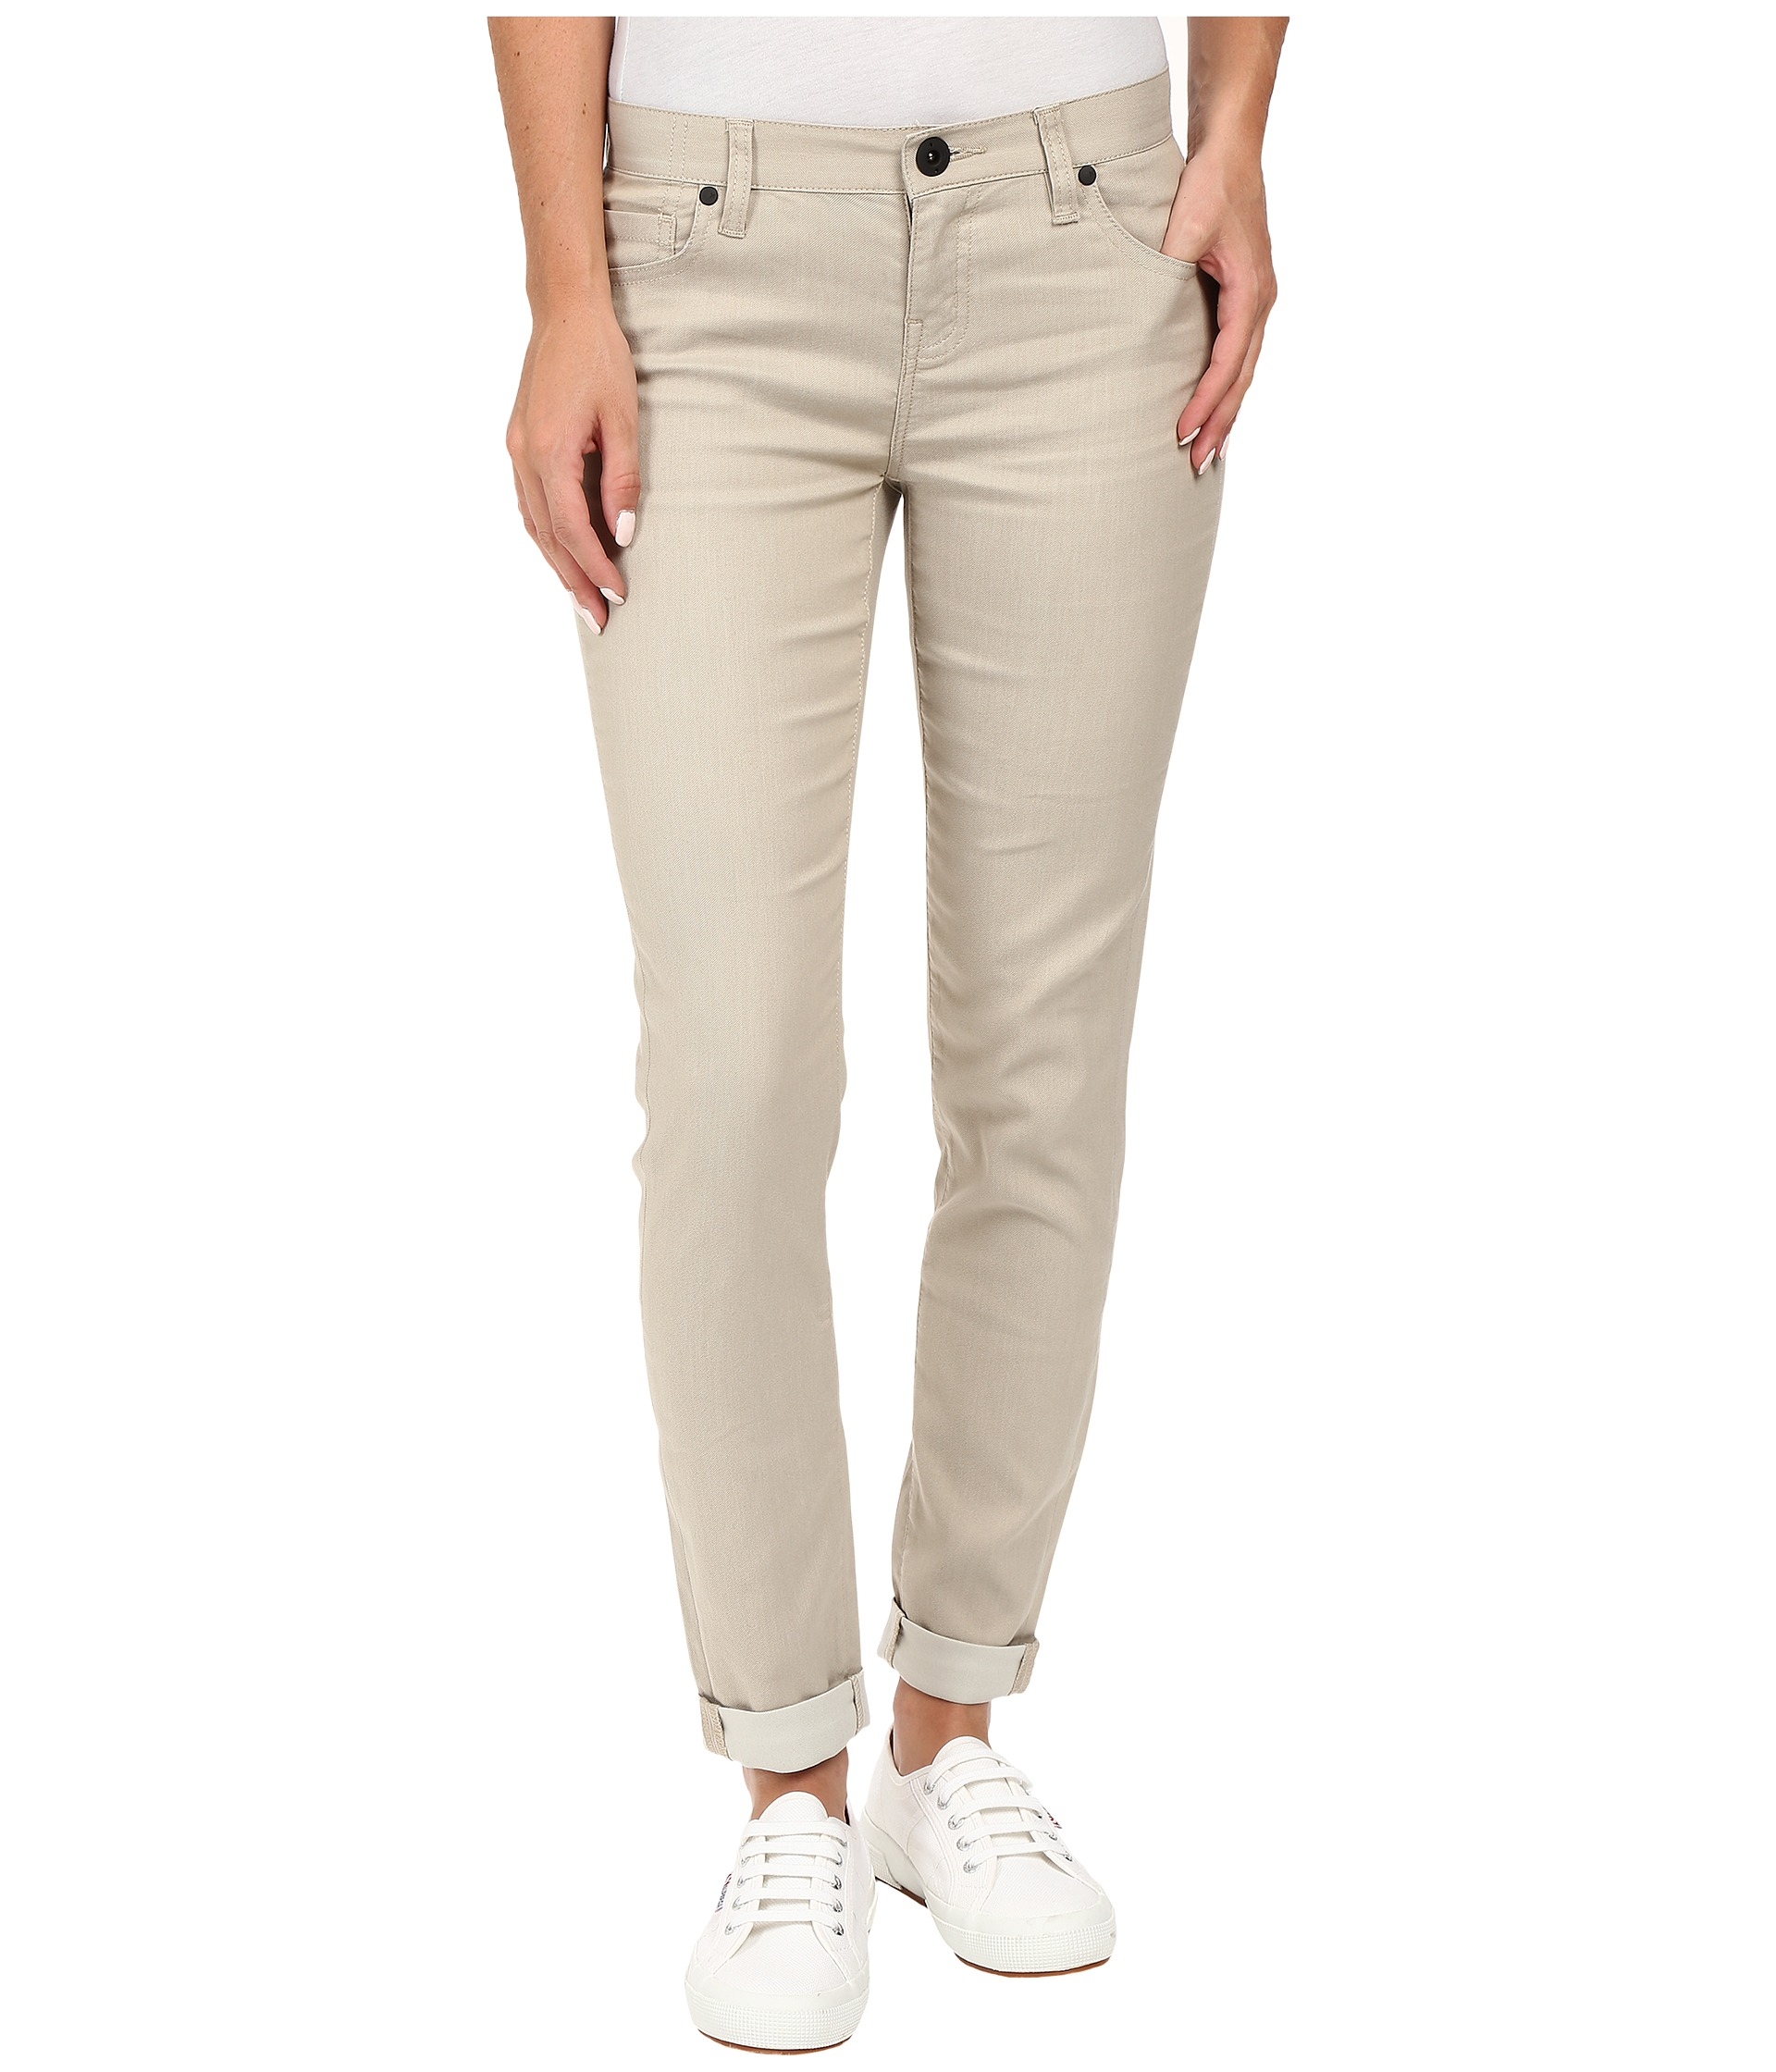 best fitting khaki pants for women - Pi Pants